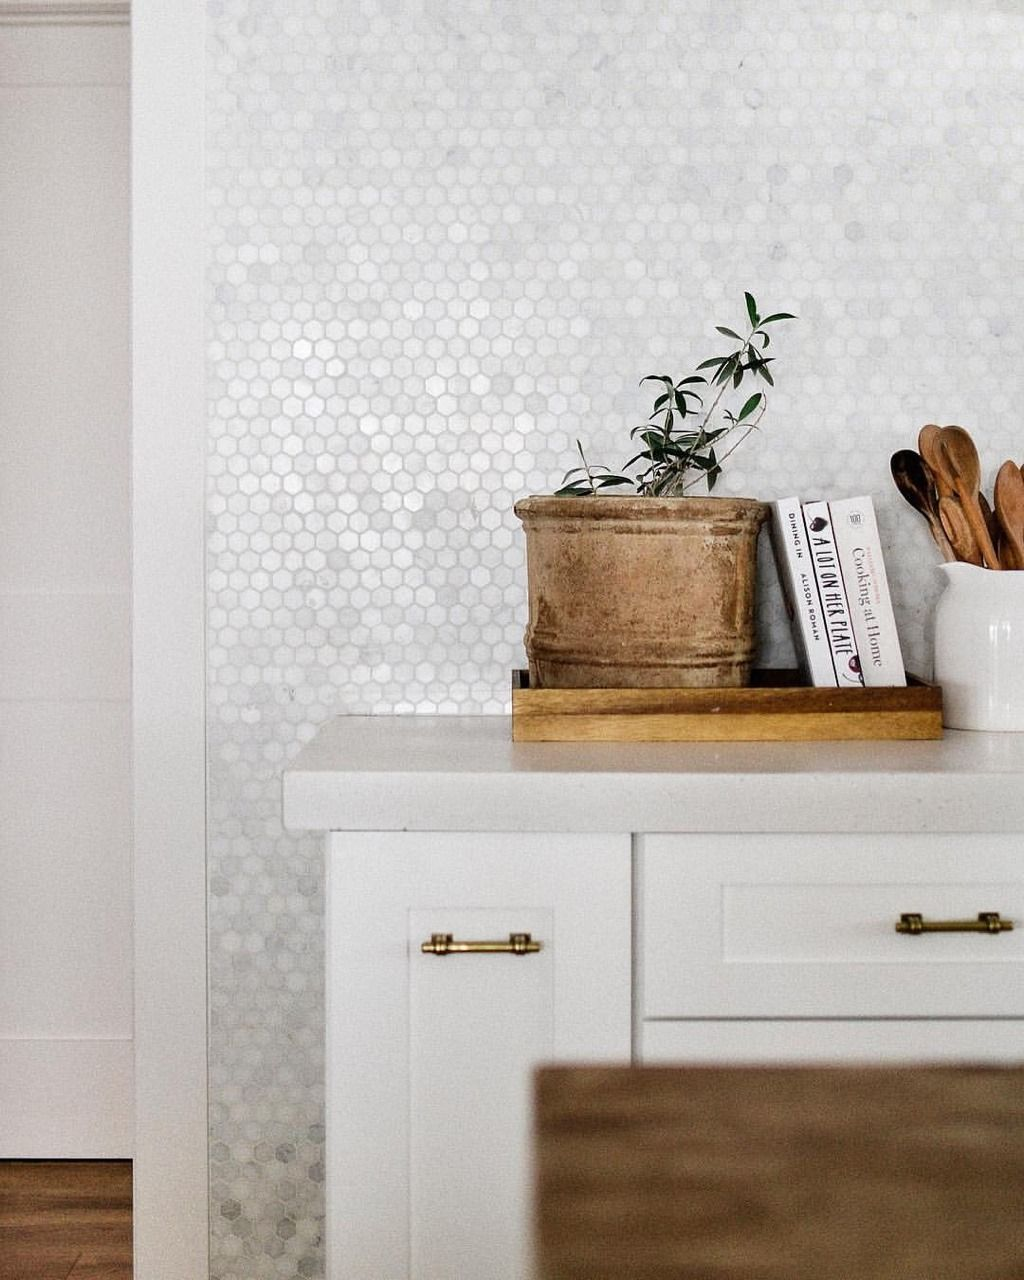 Pin by Annabelle Wright on Home Decor in Pinterest Kitchen